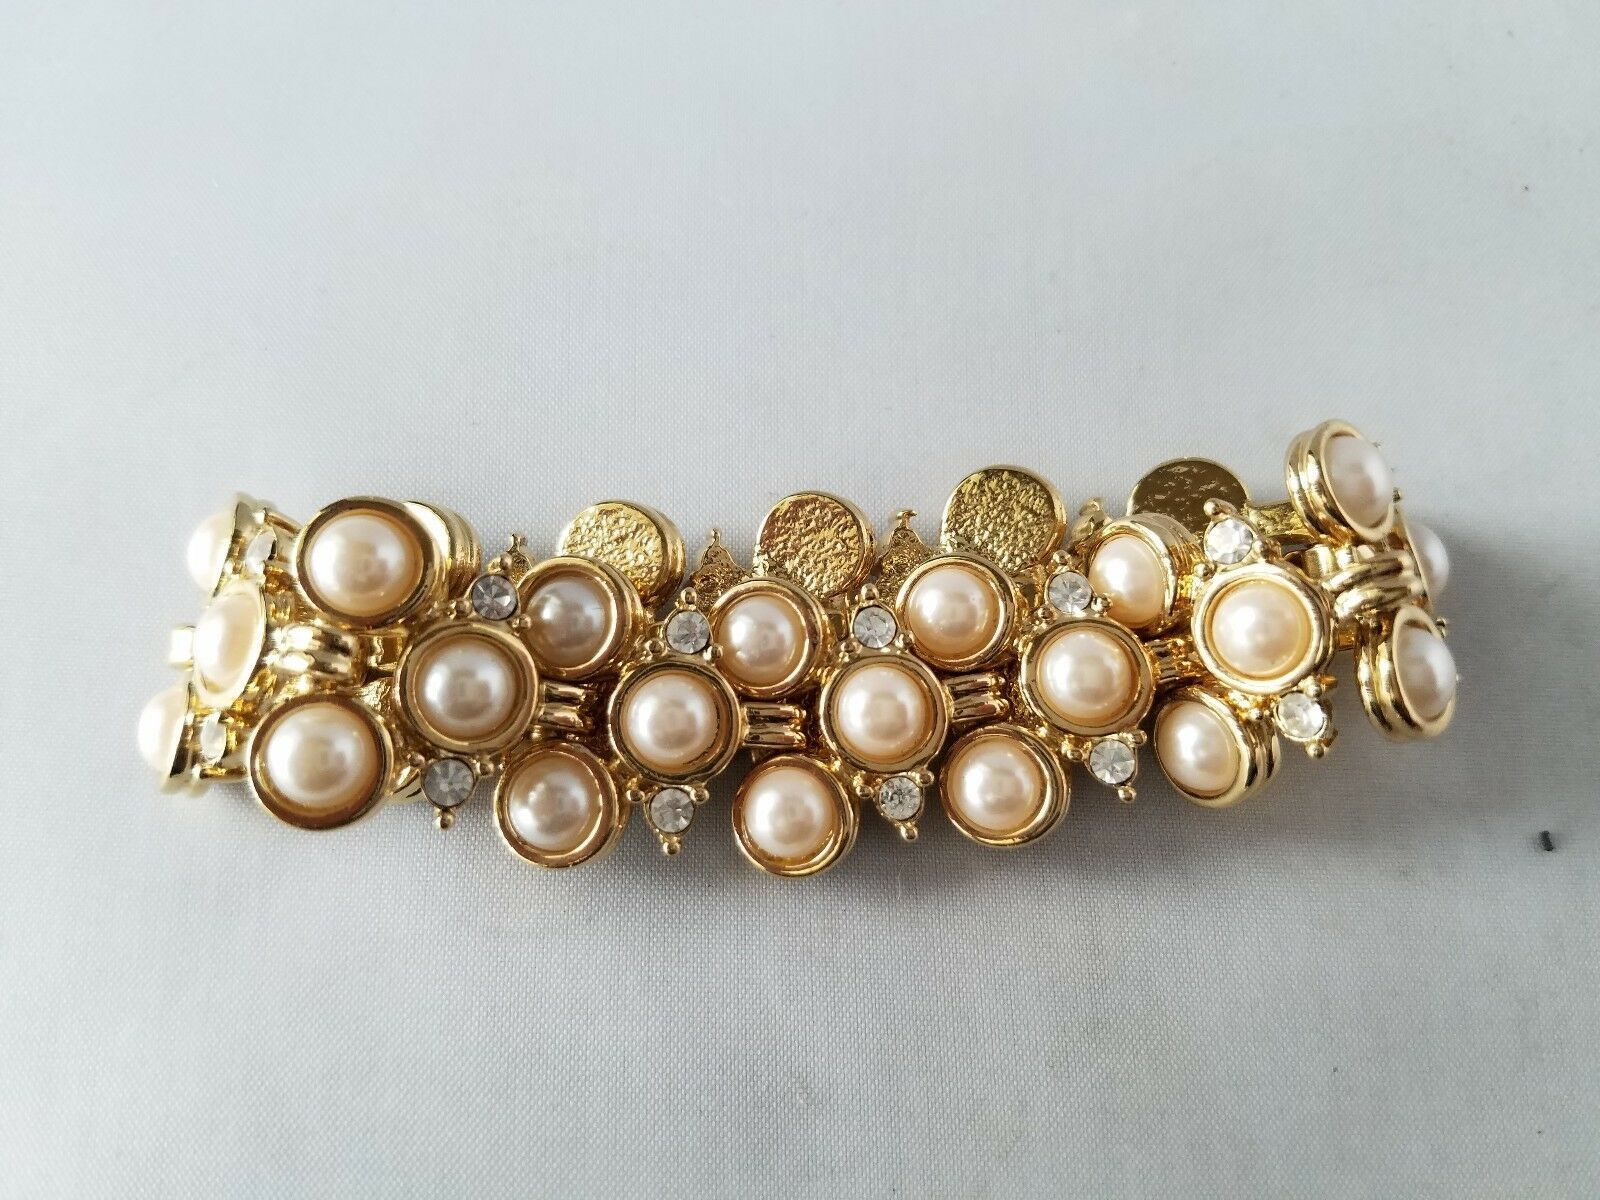 Vintage Fashion Jewelry Set Gold Tone Faux Pearl Bracelet & Earrings